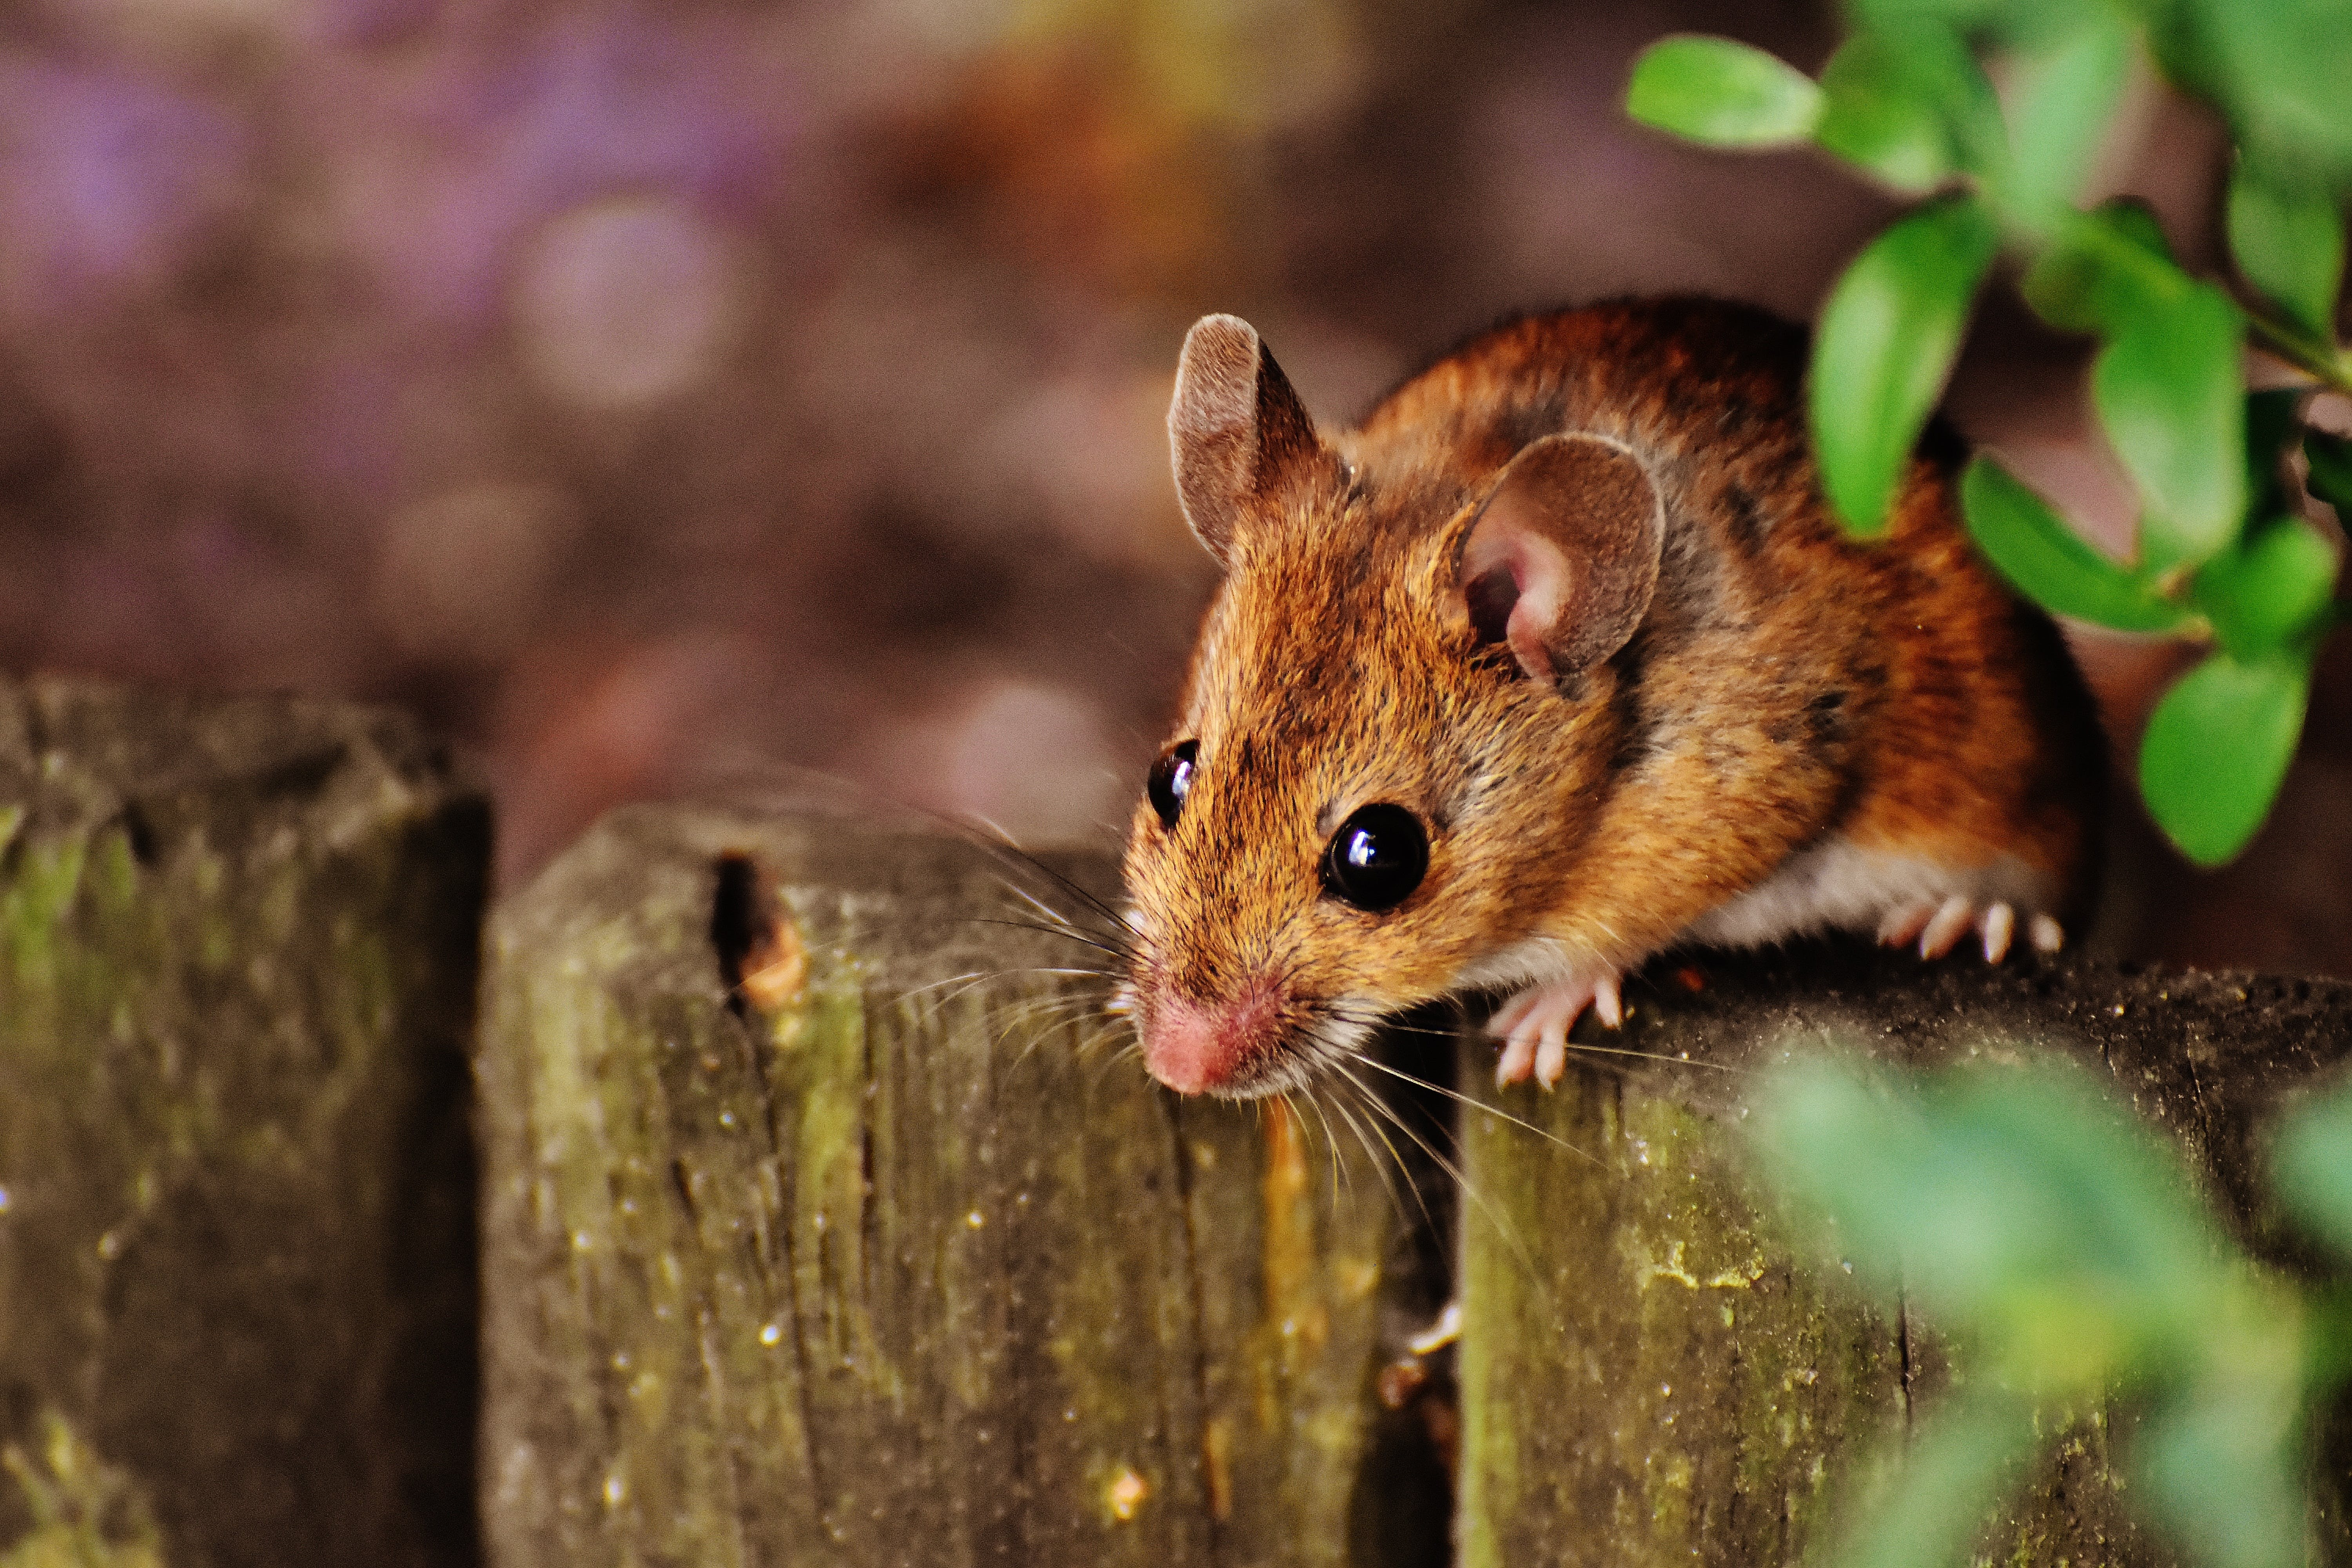 Brown Rodent on Gray Fence Beside Green Leaved Plants Under Sunny Sky